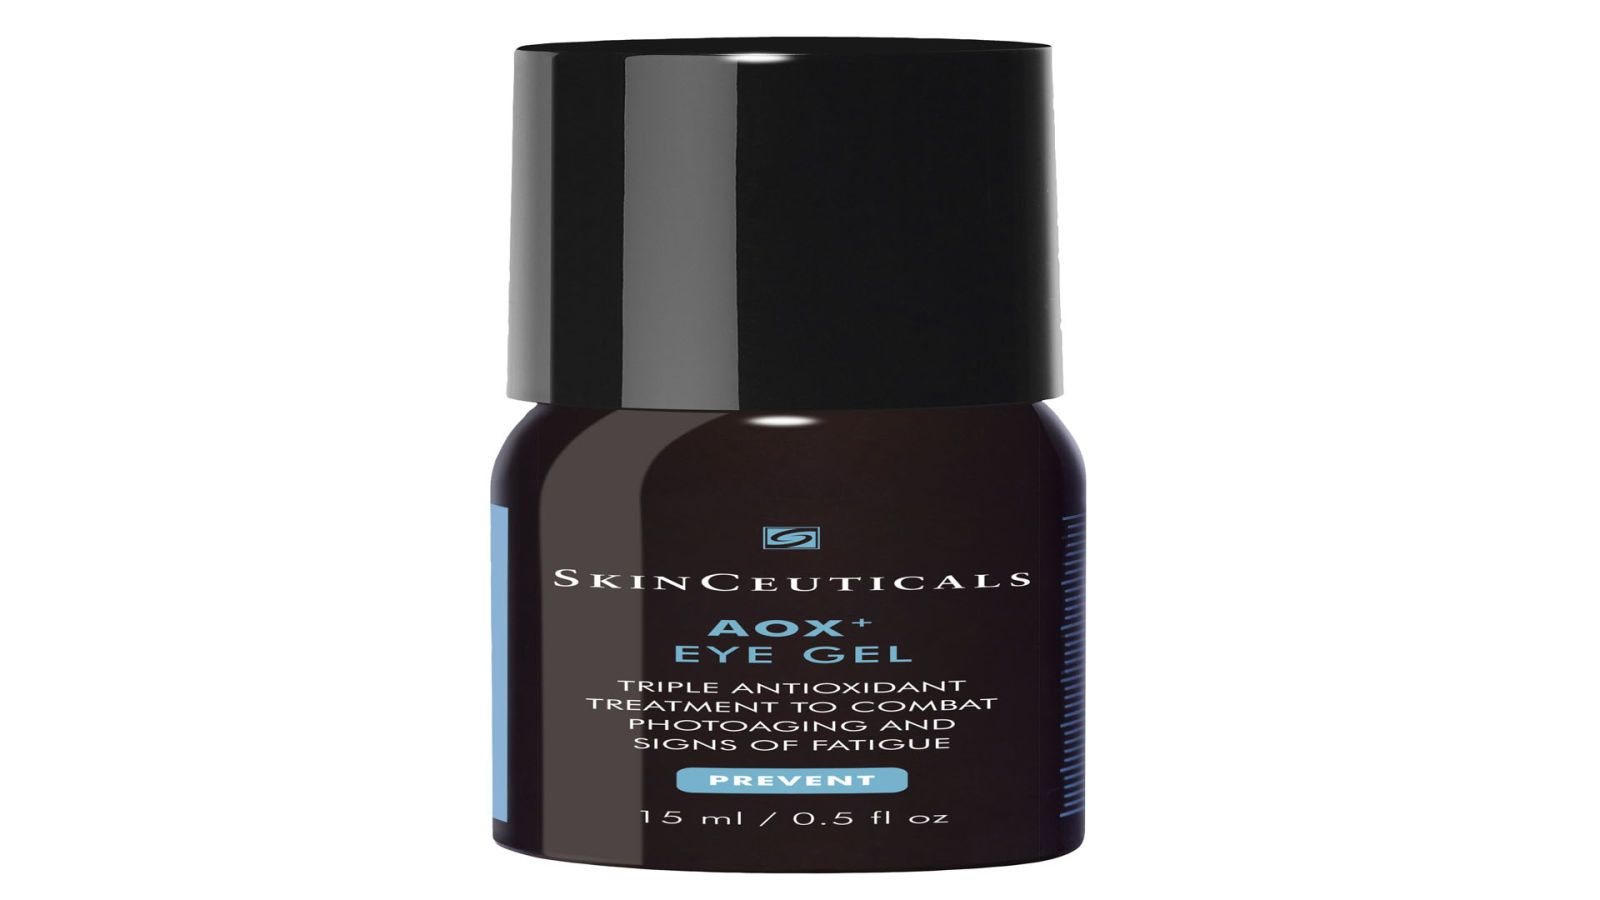 aox+ eye gel by skinceuticals